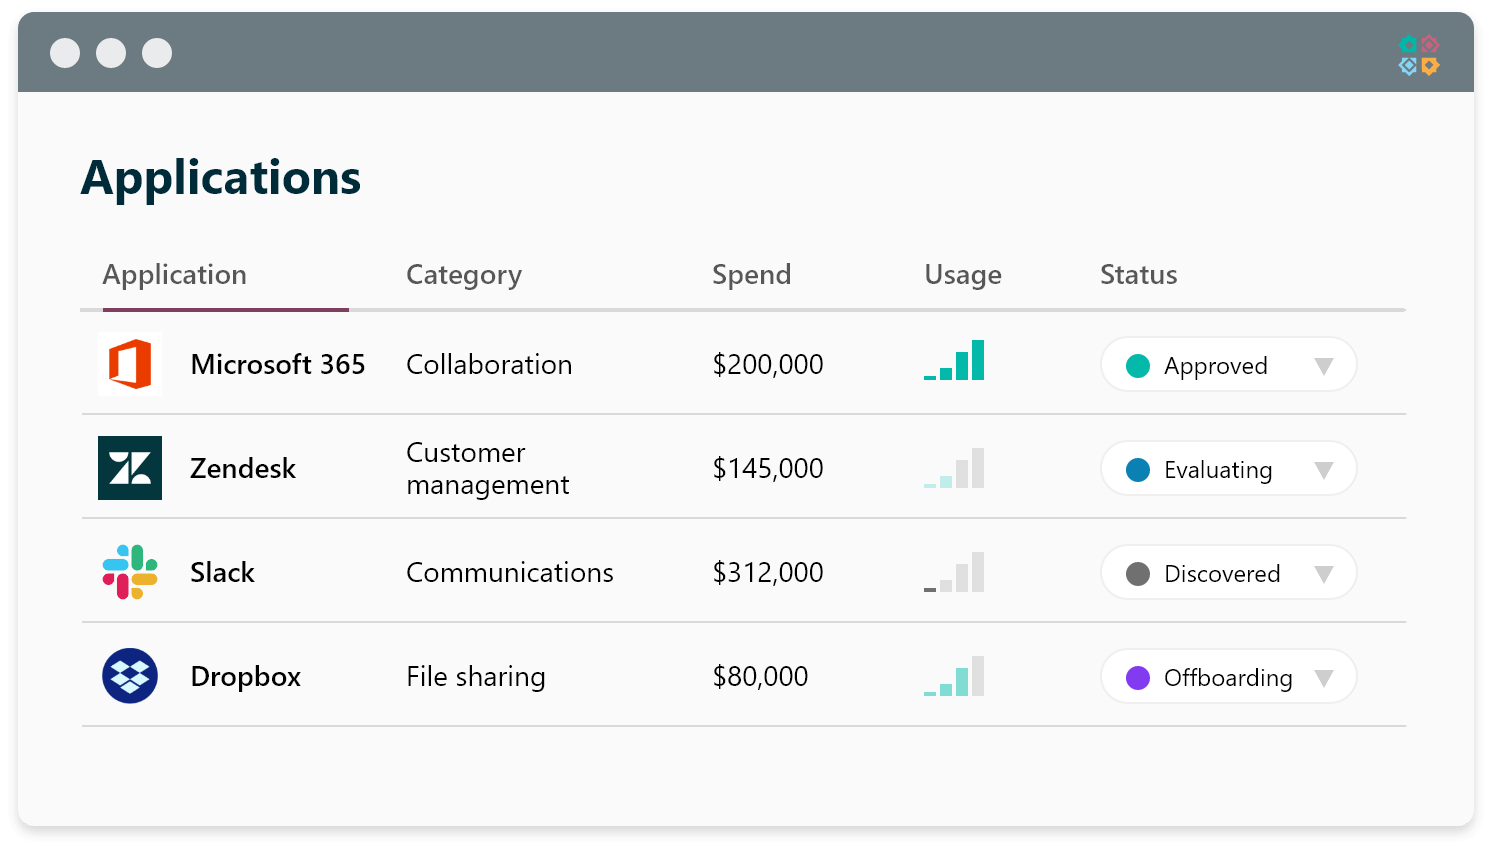 SaaS inventory with spend and usage details